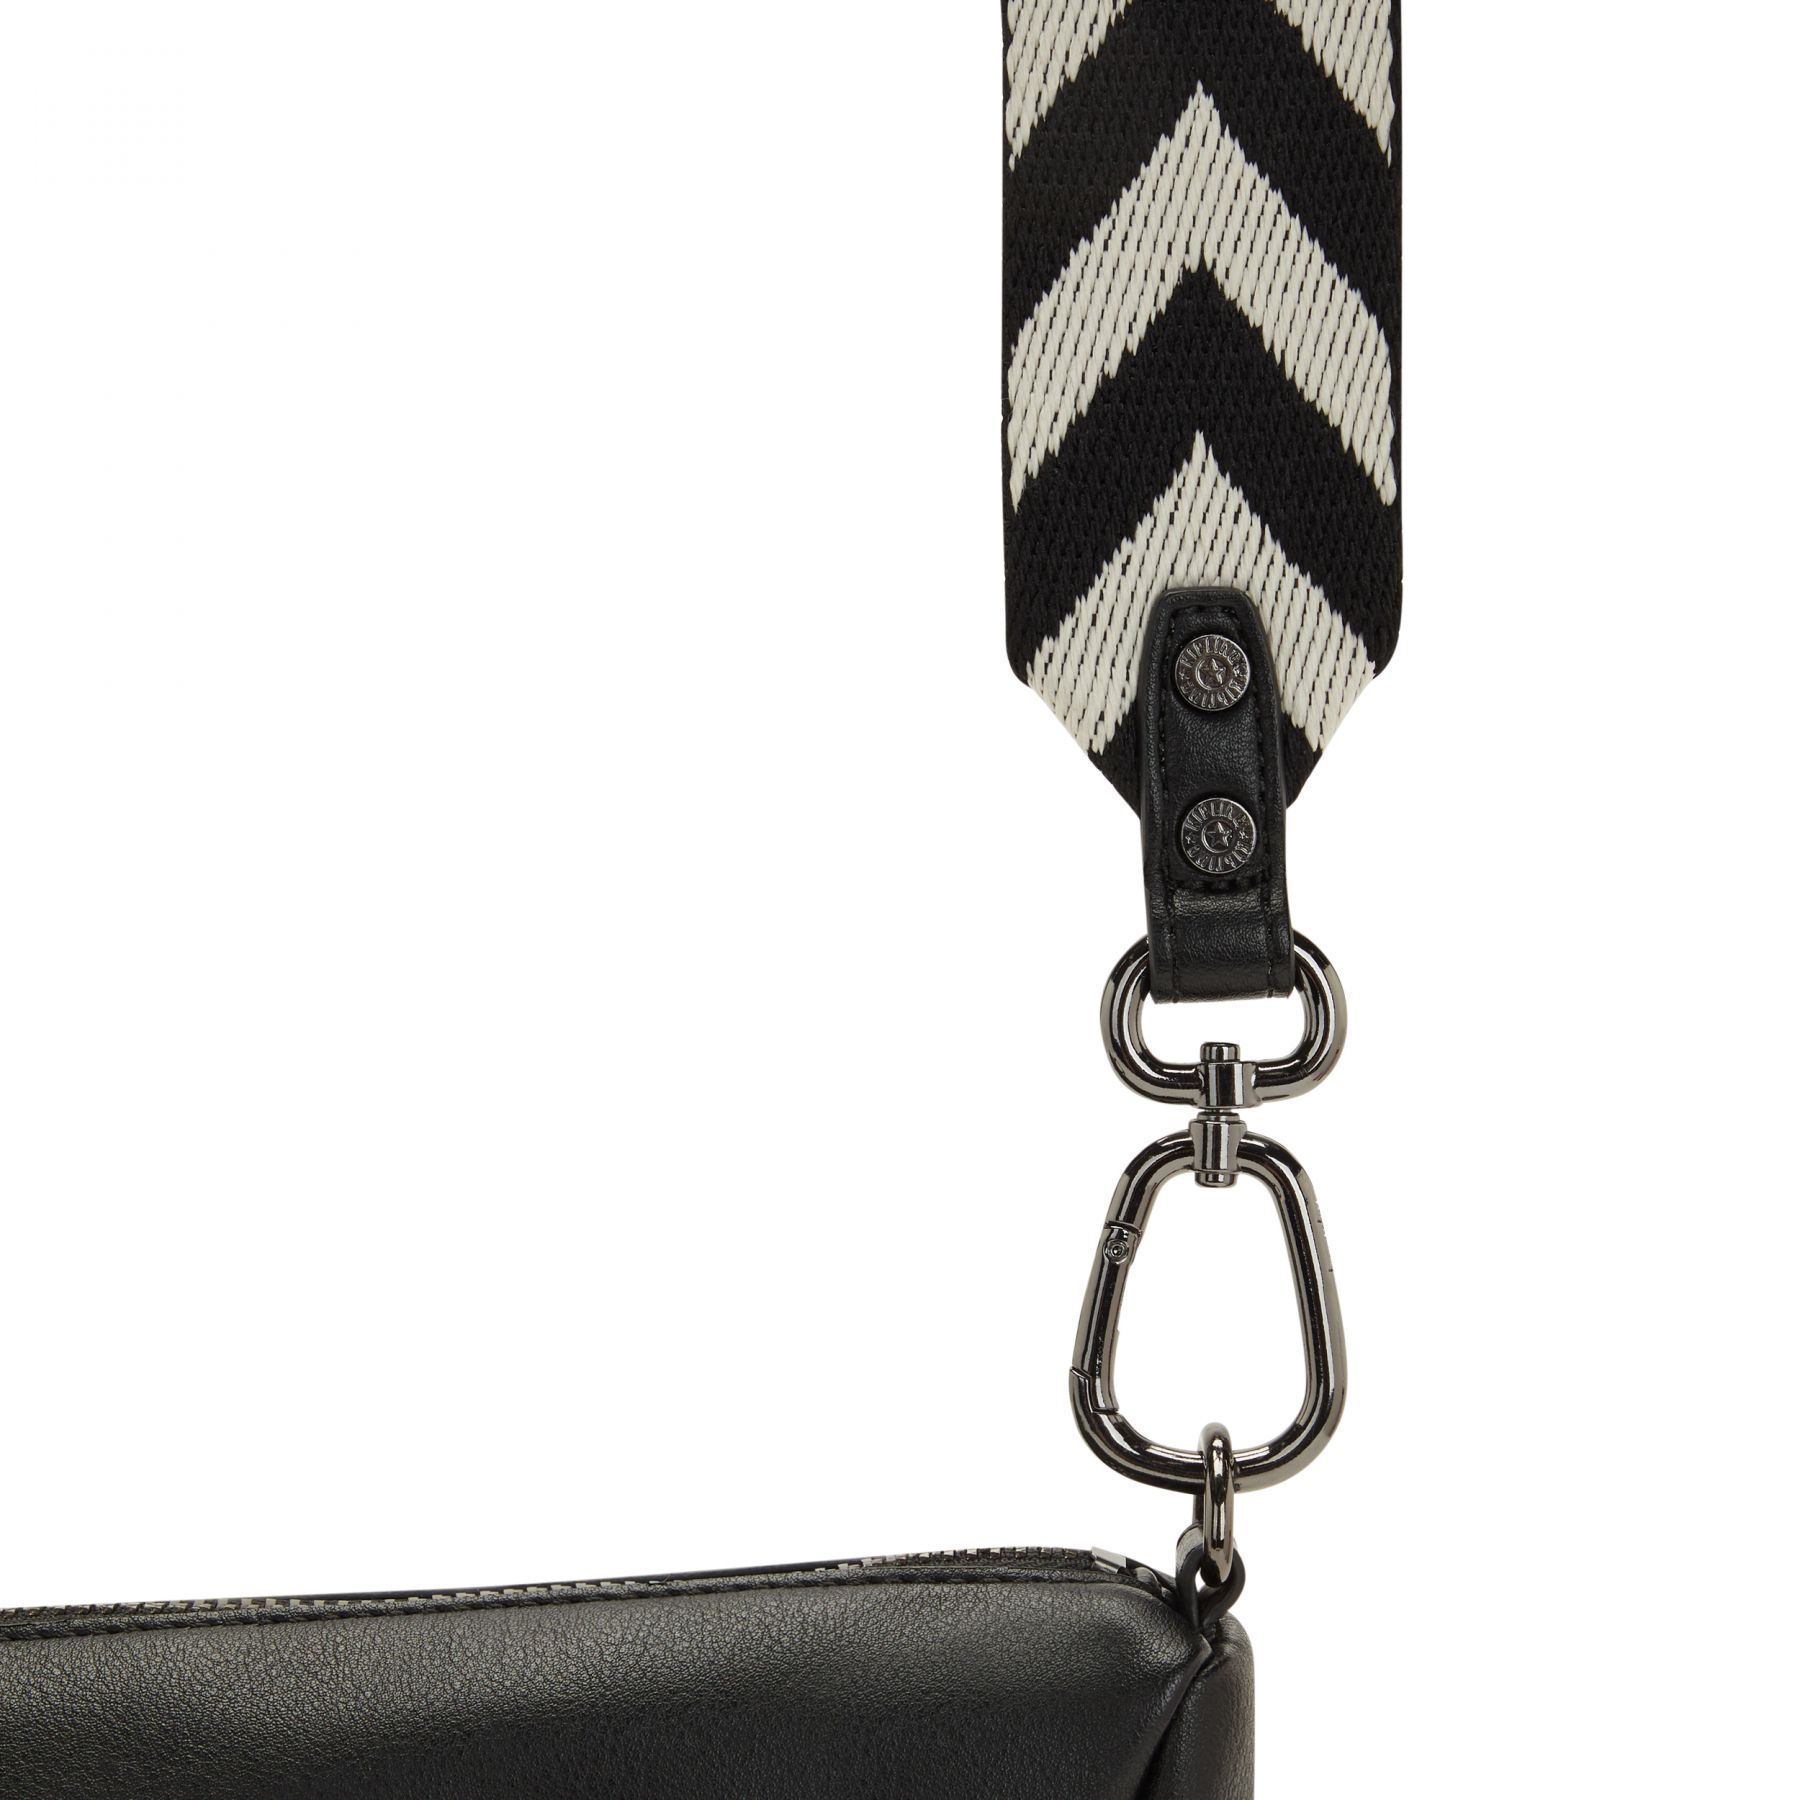 SHOULDERSTRAP S ACCESSORIES by Kipling - Front view